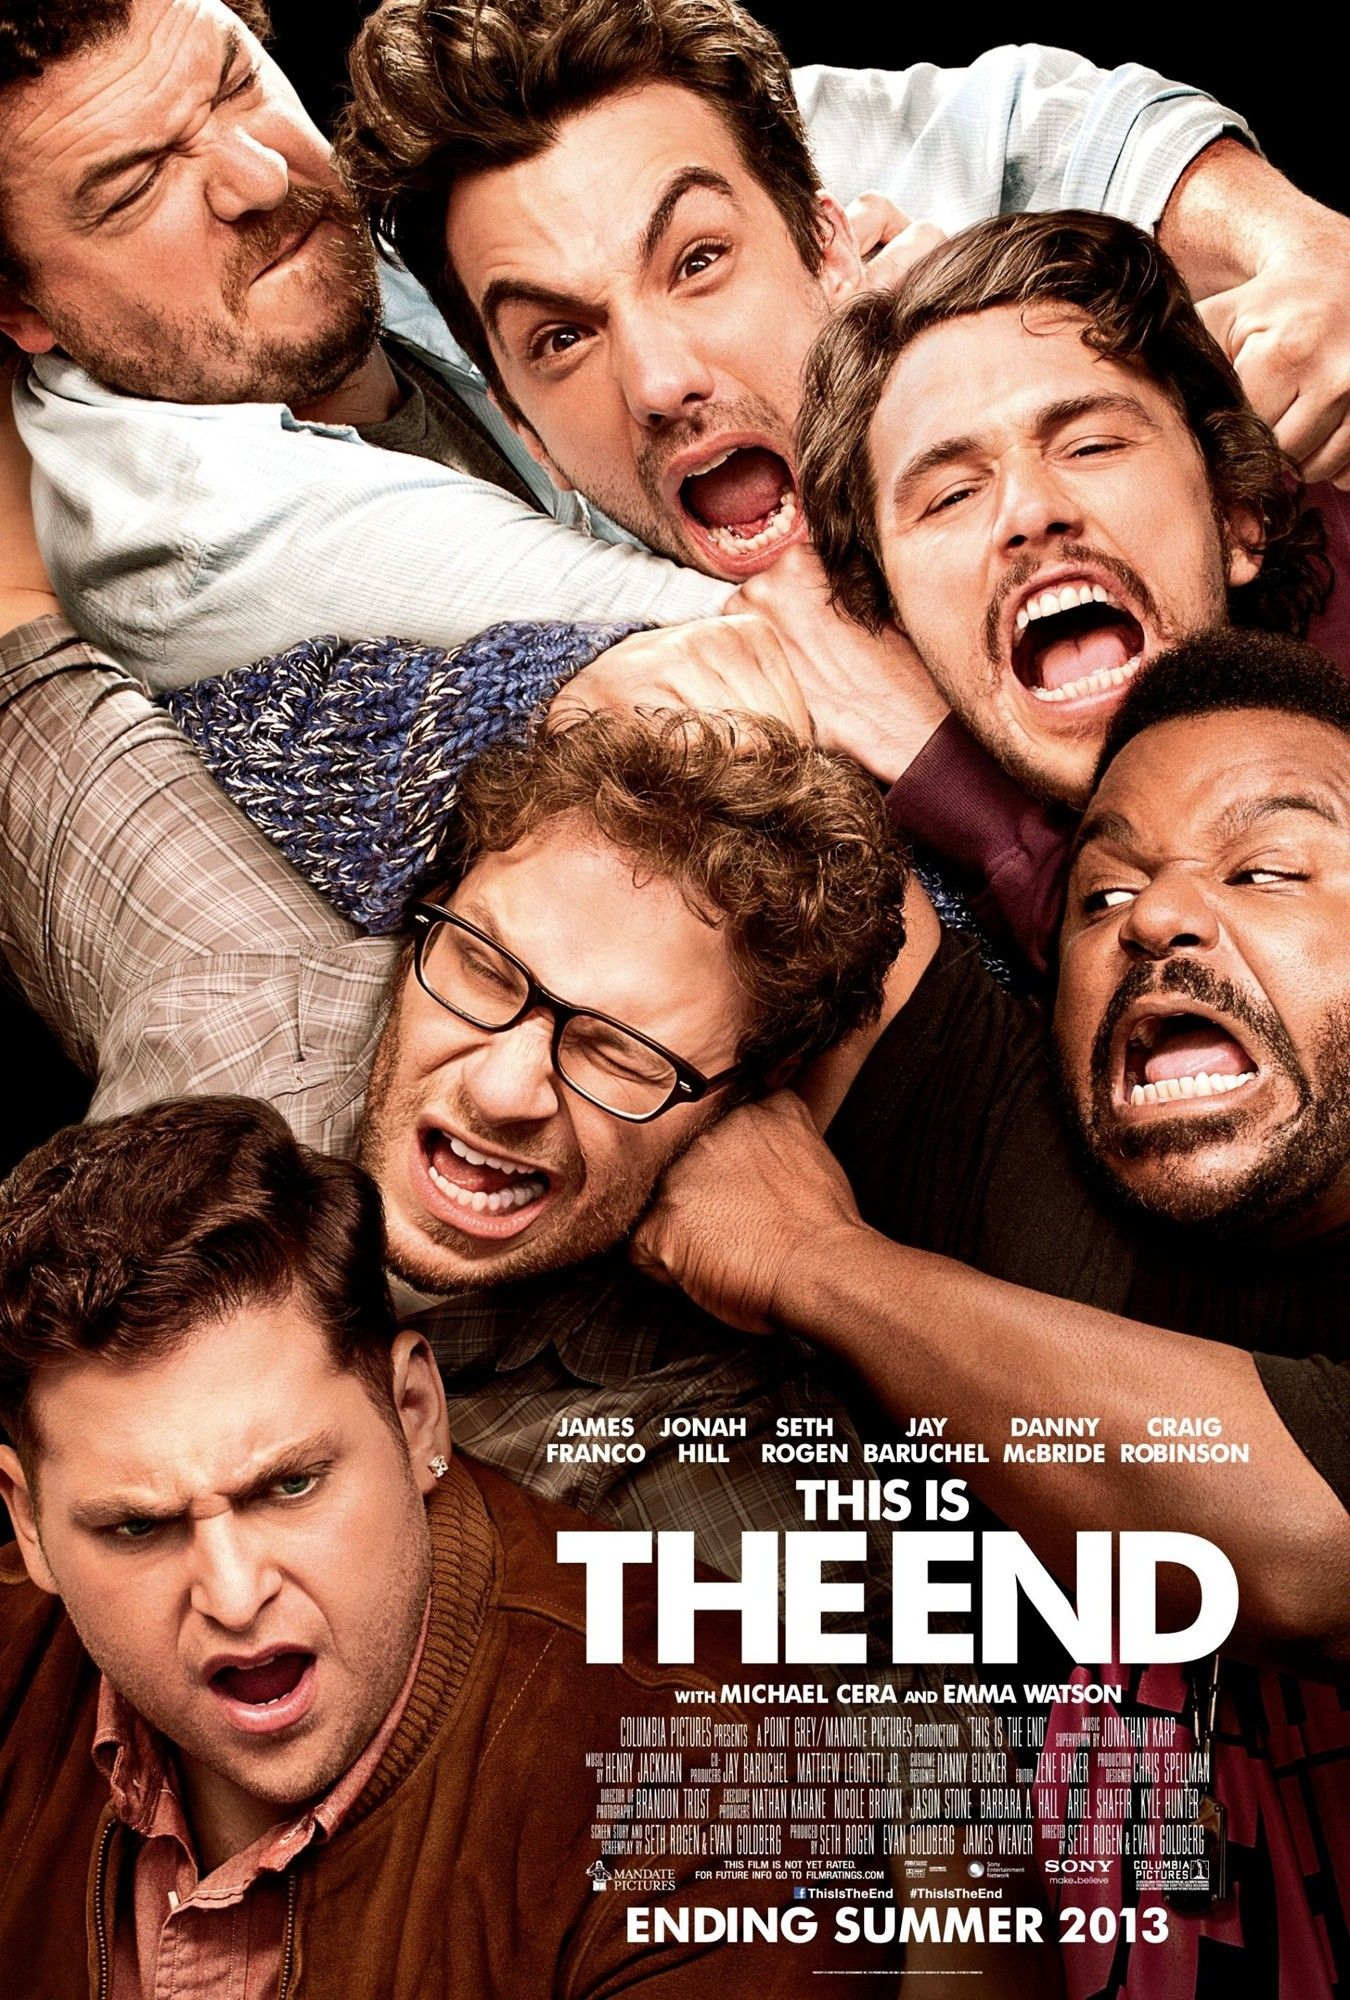 This is the end directed by seth rogen evan goldberg cinematography by brandon